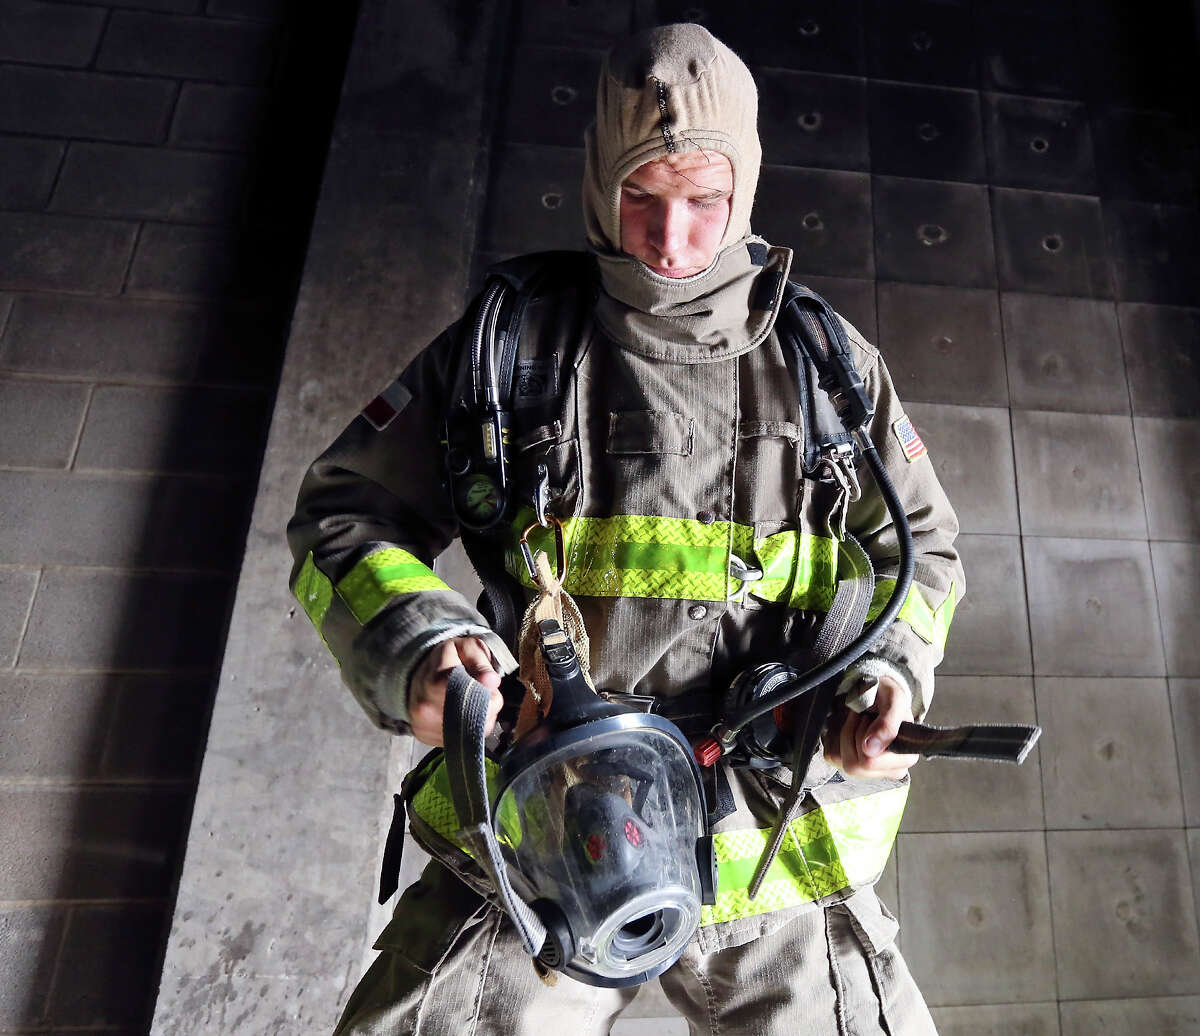 San Antonio Fire Department cadet Christopher Williams prepares to take part in a live fire demonstration with other members of SAFD Cadet Class 2015 Alpha part of the SAFD Cadet Family Night Thursday July 9, 2015 at the SAFD Training Academy.